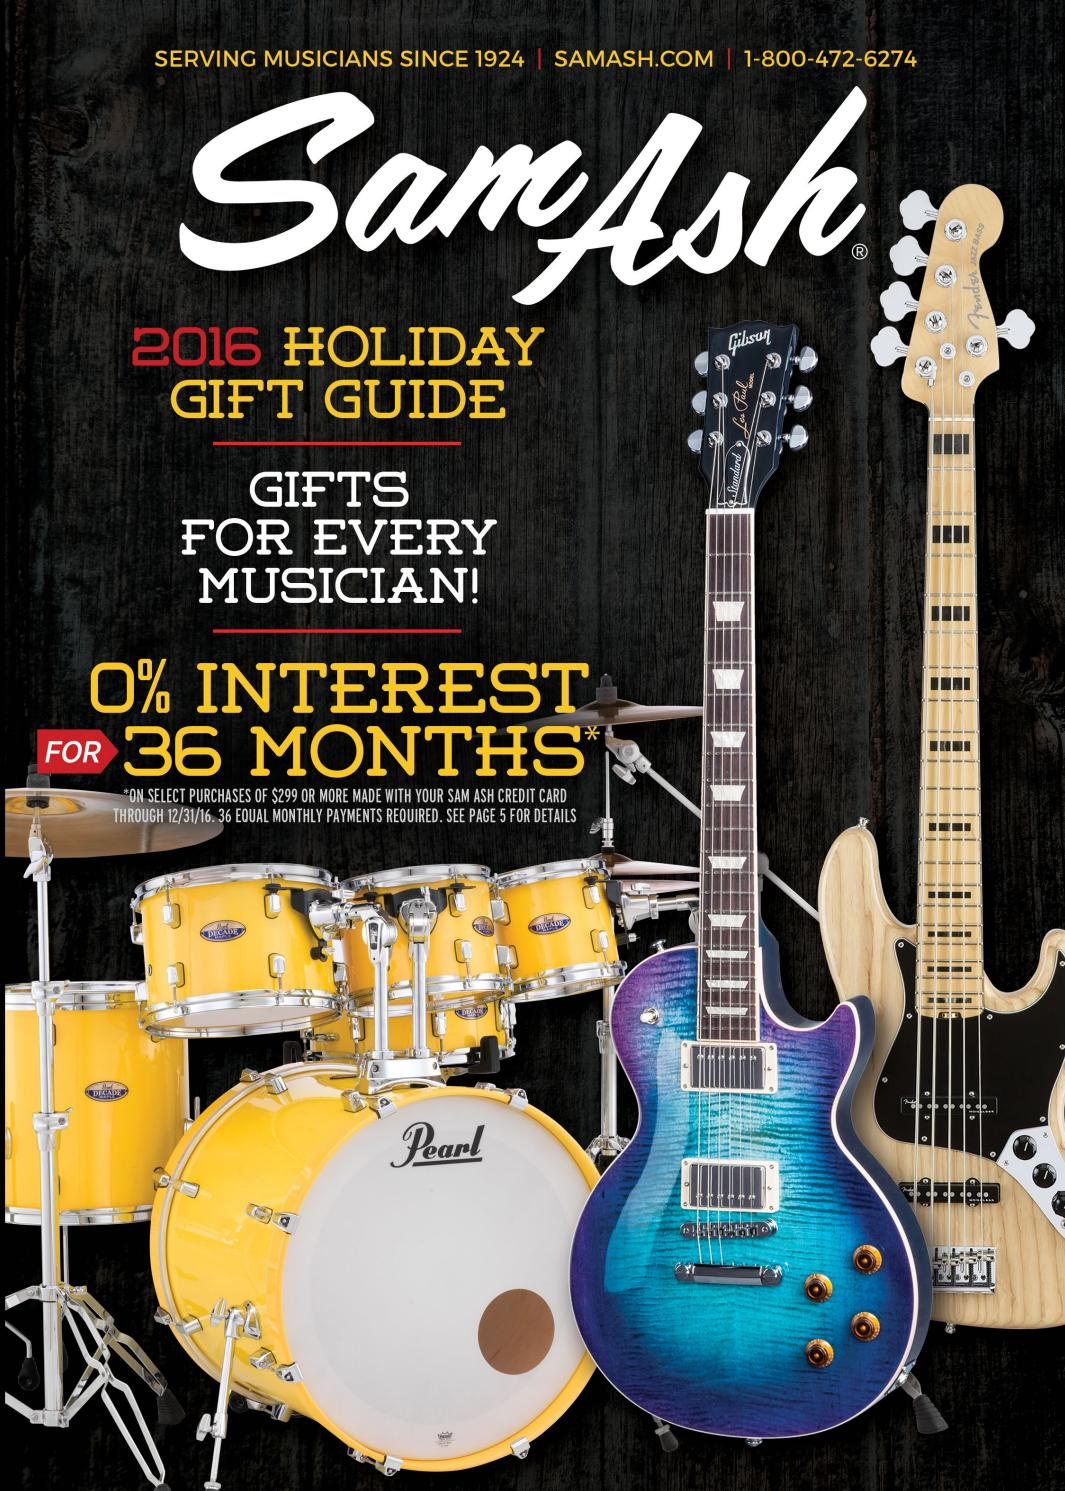 Holiday 2016 Sam Ash Gearguide By Music Corp Issuu Gilson Bros Wiring Diagram